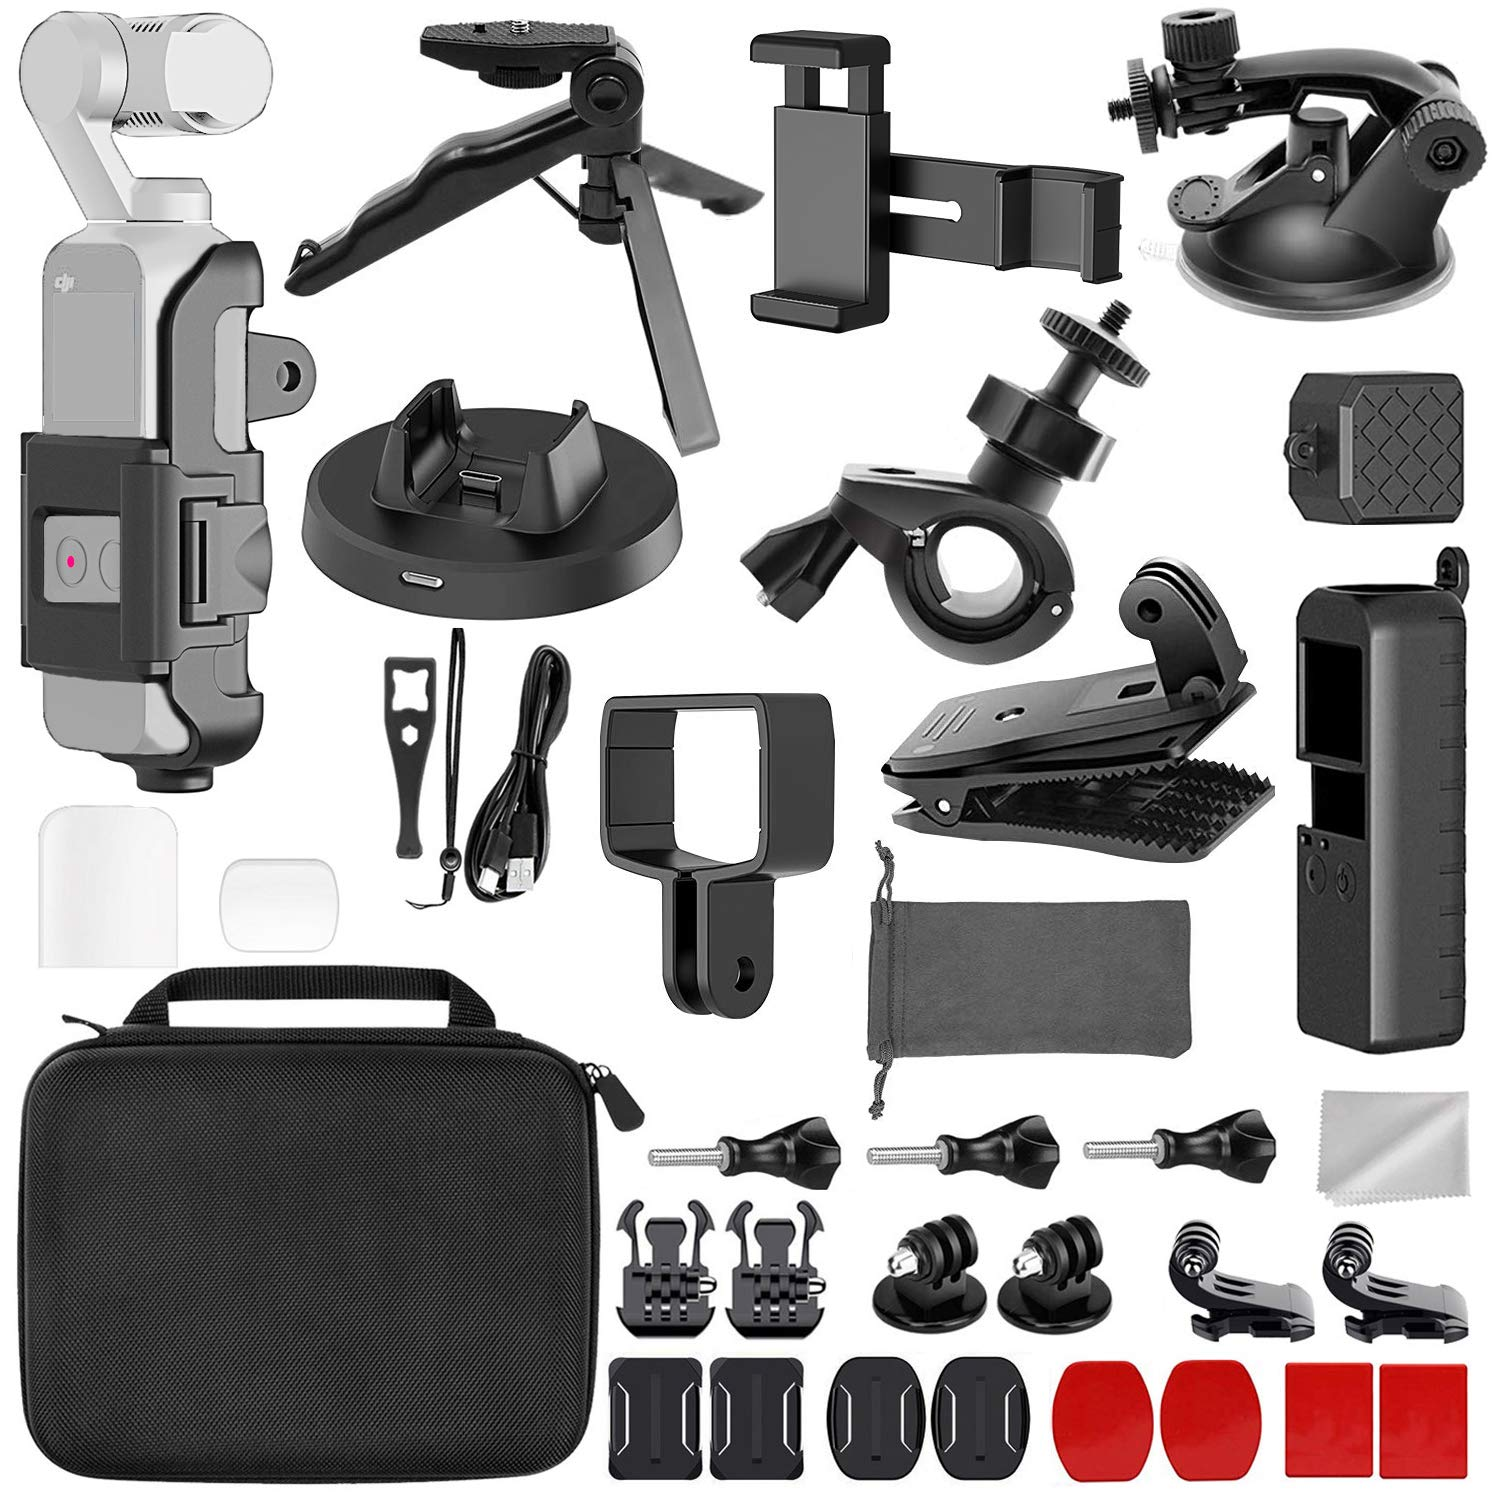 LANYIB 33-in-1 OSMO Pocket Accessories Kit, DJI Osmo Pokcet Expansion Kit Including Extension Holder, Mobile Phone Holder, Tripod, Car Suction Cup Bracket, Strap Clip, Charging Base and More by LANYIB